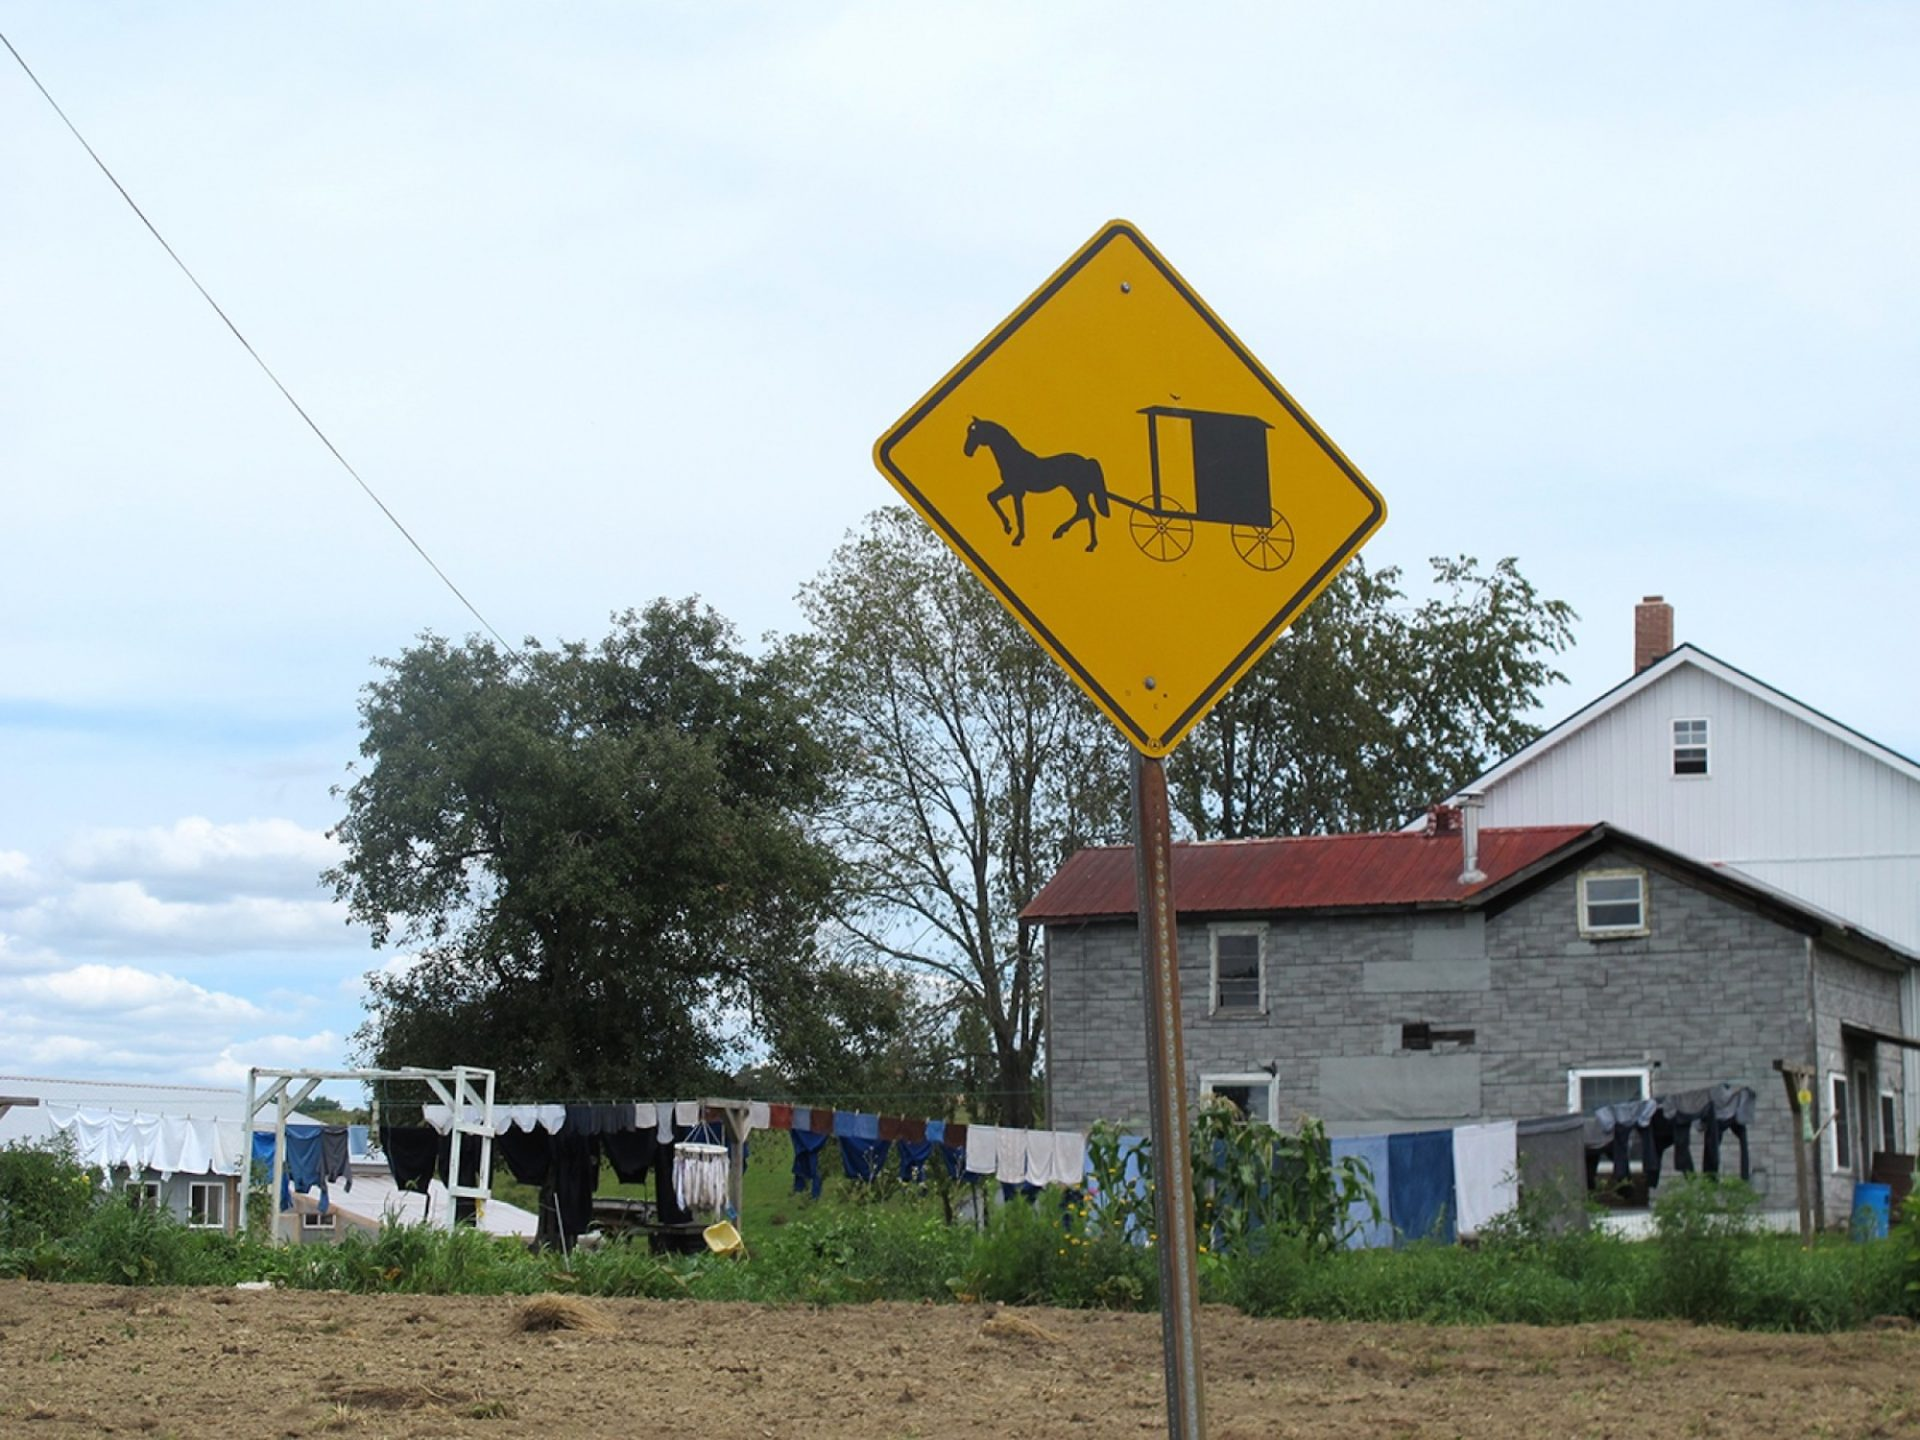 Pennsylvania health care providers are adjusting their vaccine outreach strategies to target those living in more rural parts of the state, including Amish and conservative Mennonite communities.